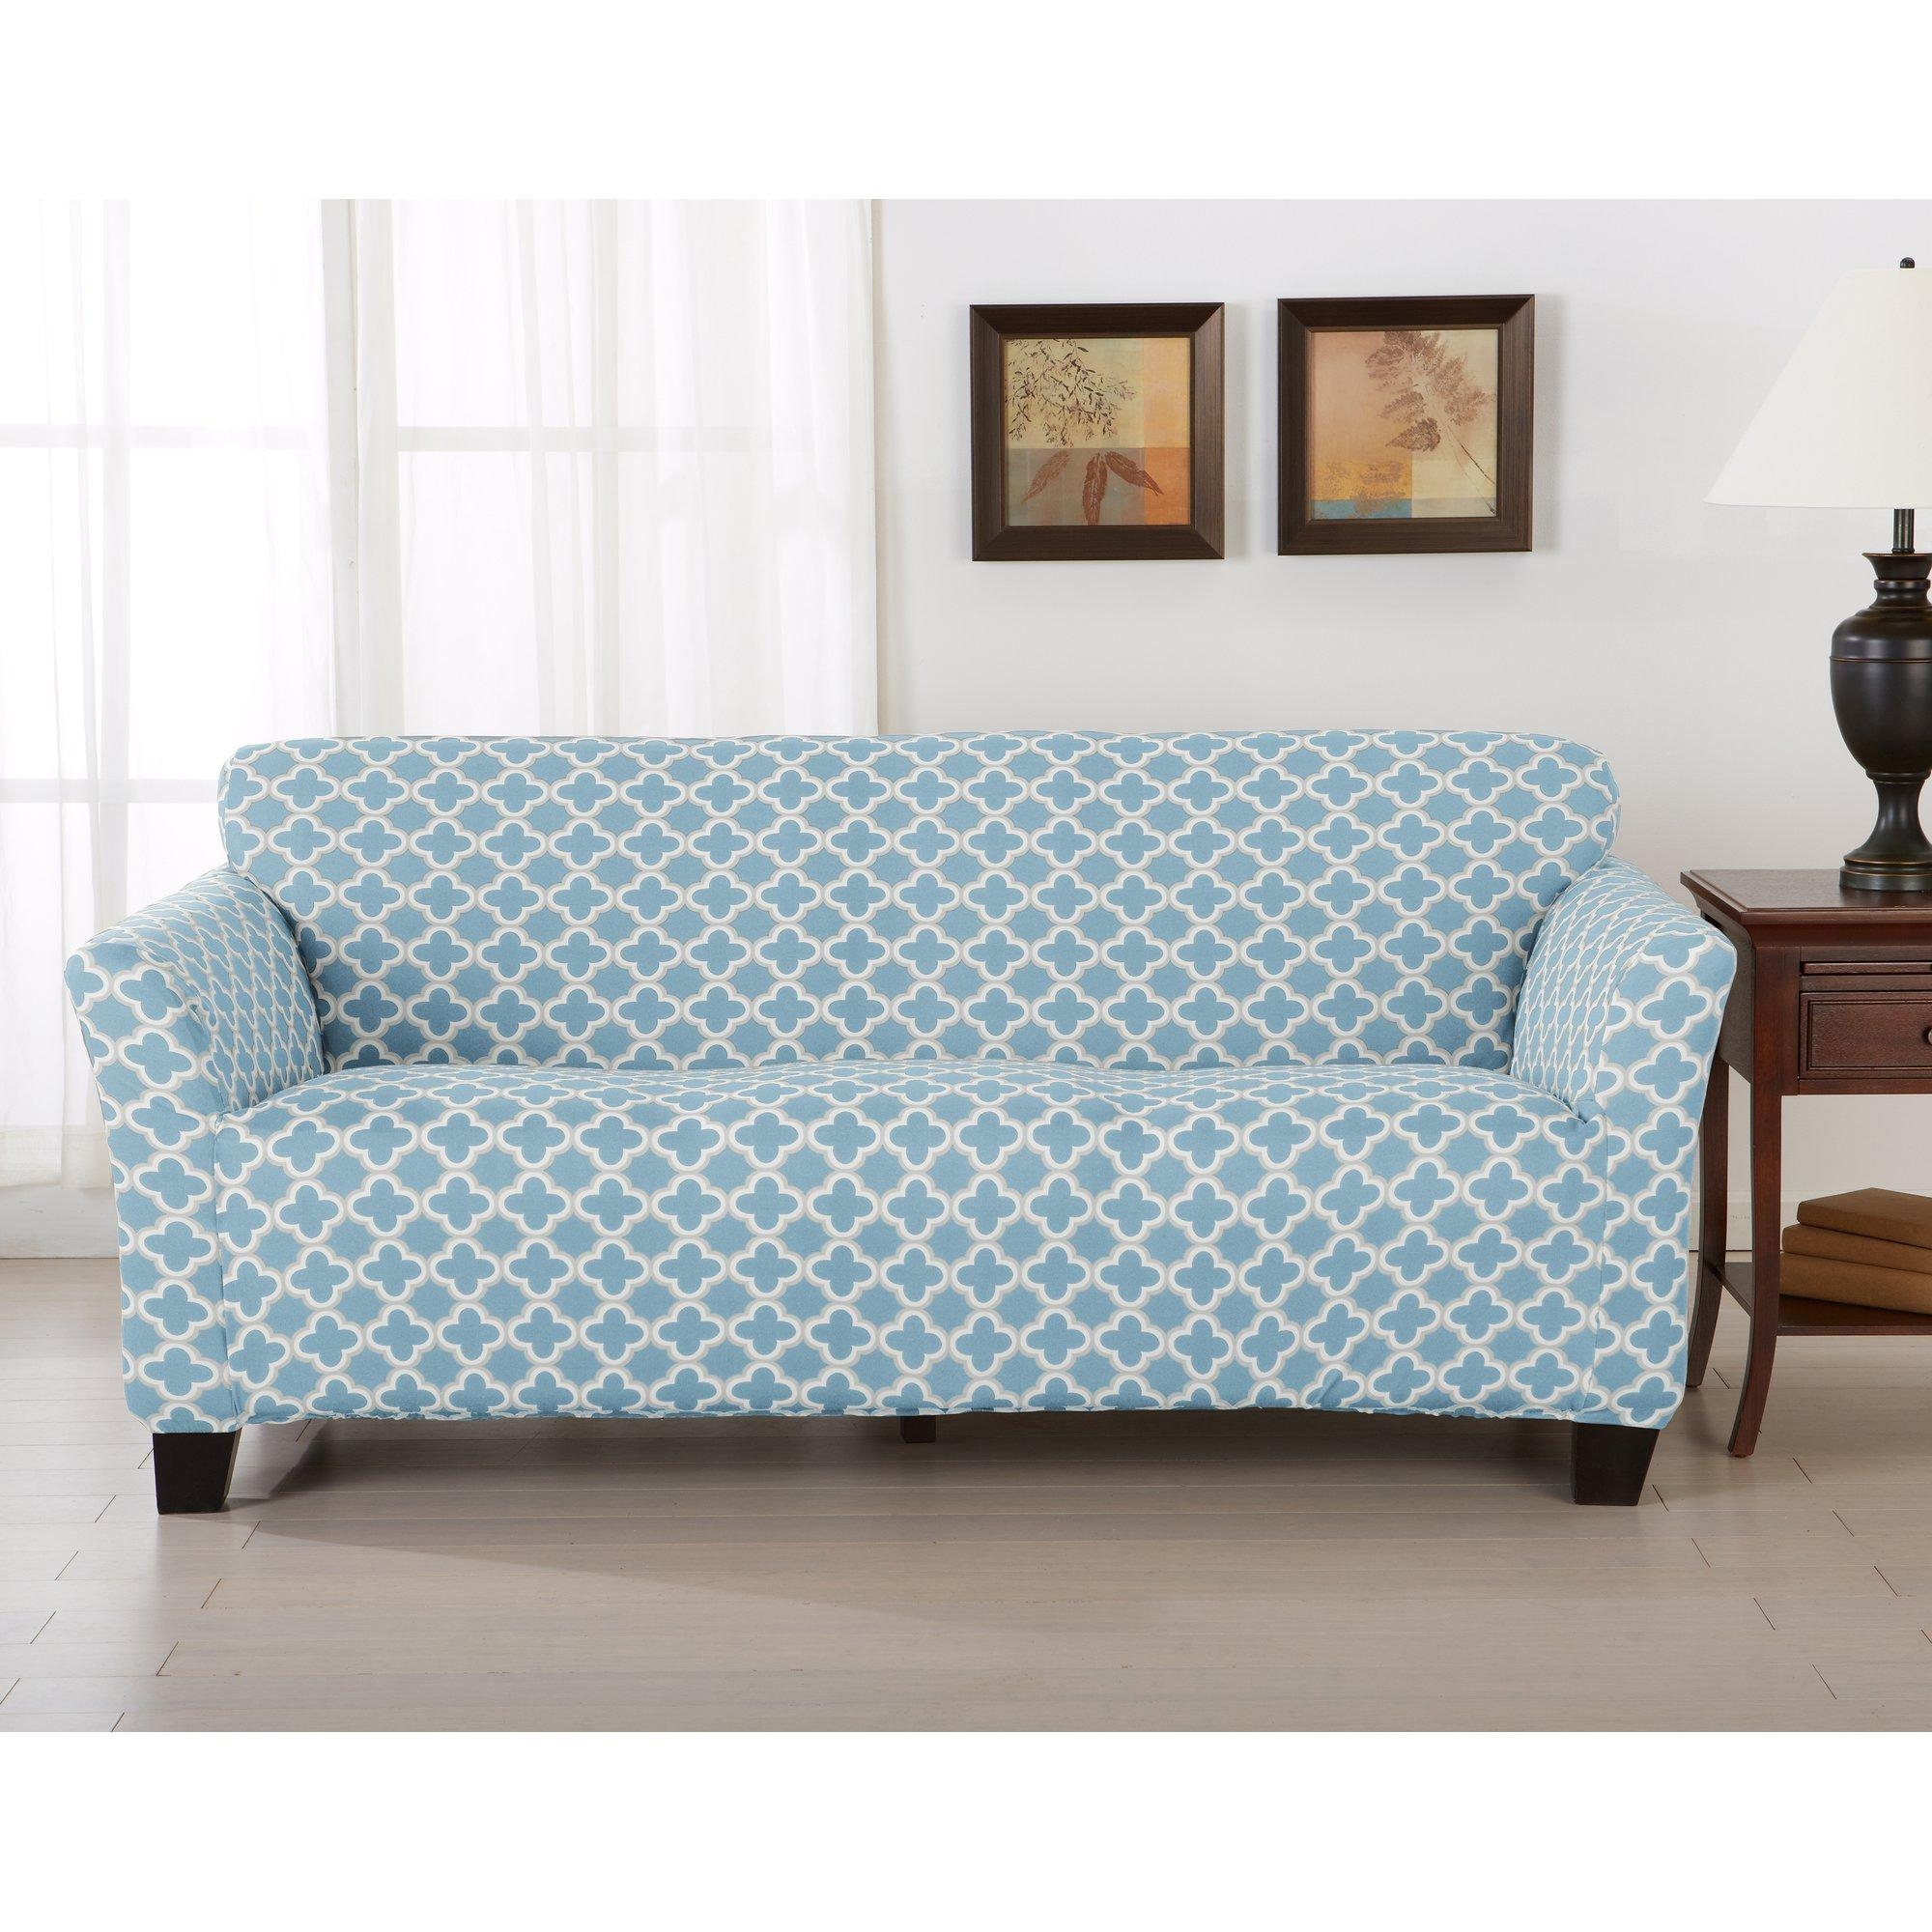 Furniture: Update Your Living Room With Best Sofa Slipcover Design Throughout Teal Sofa Slipcovers (View 1 of 20)